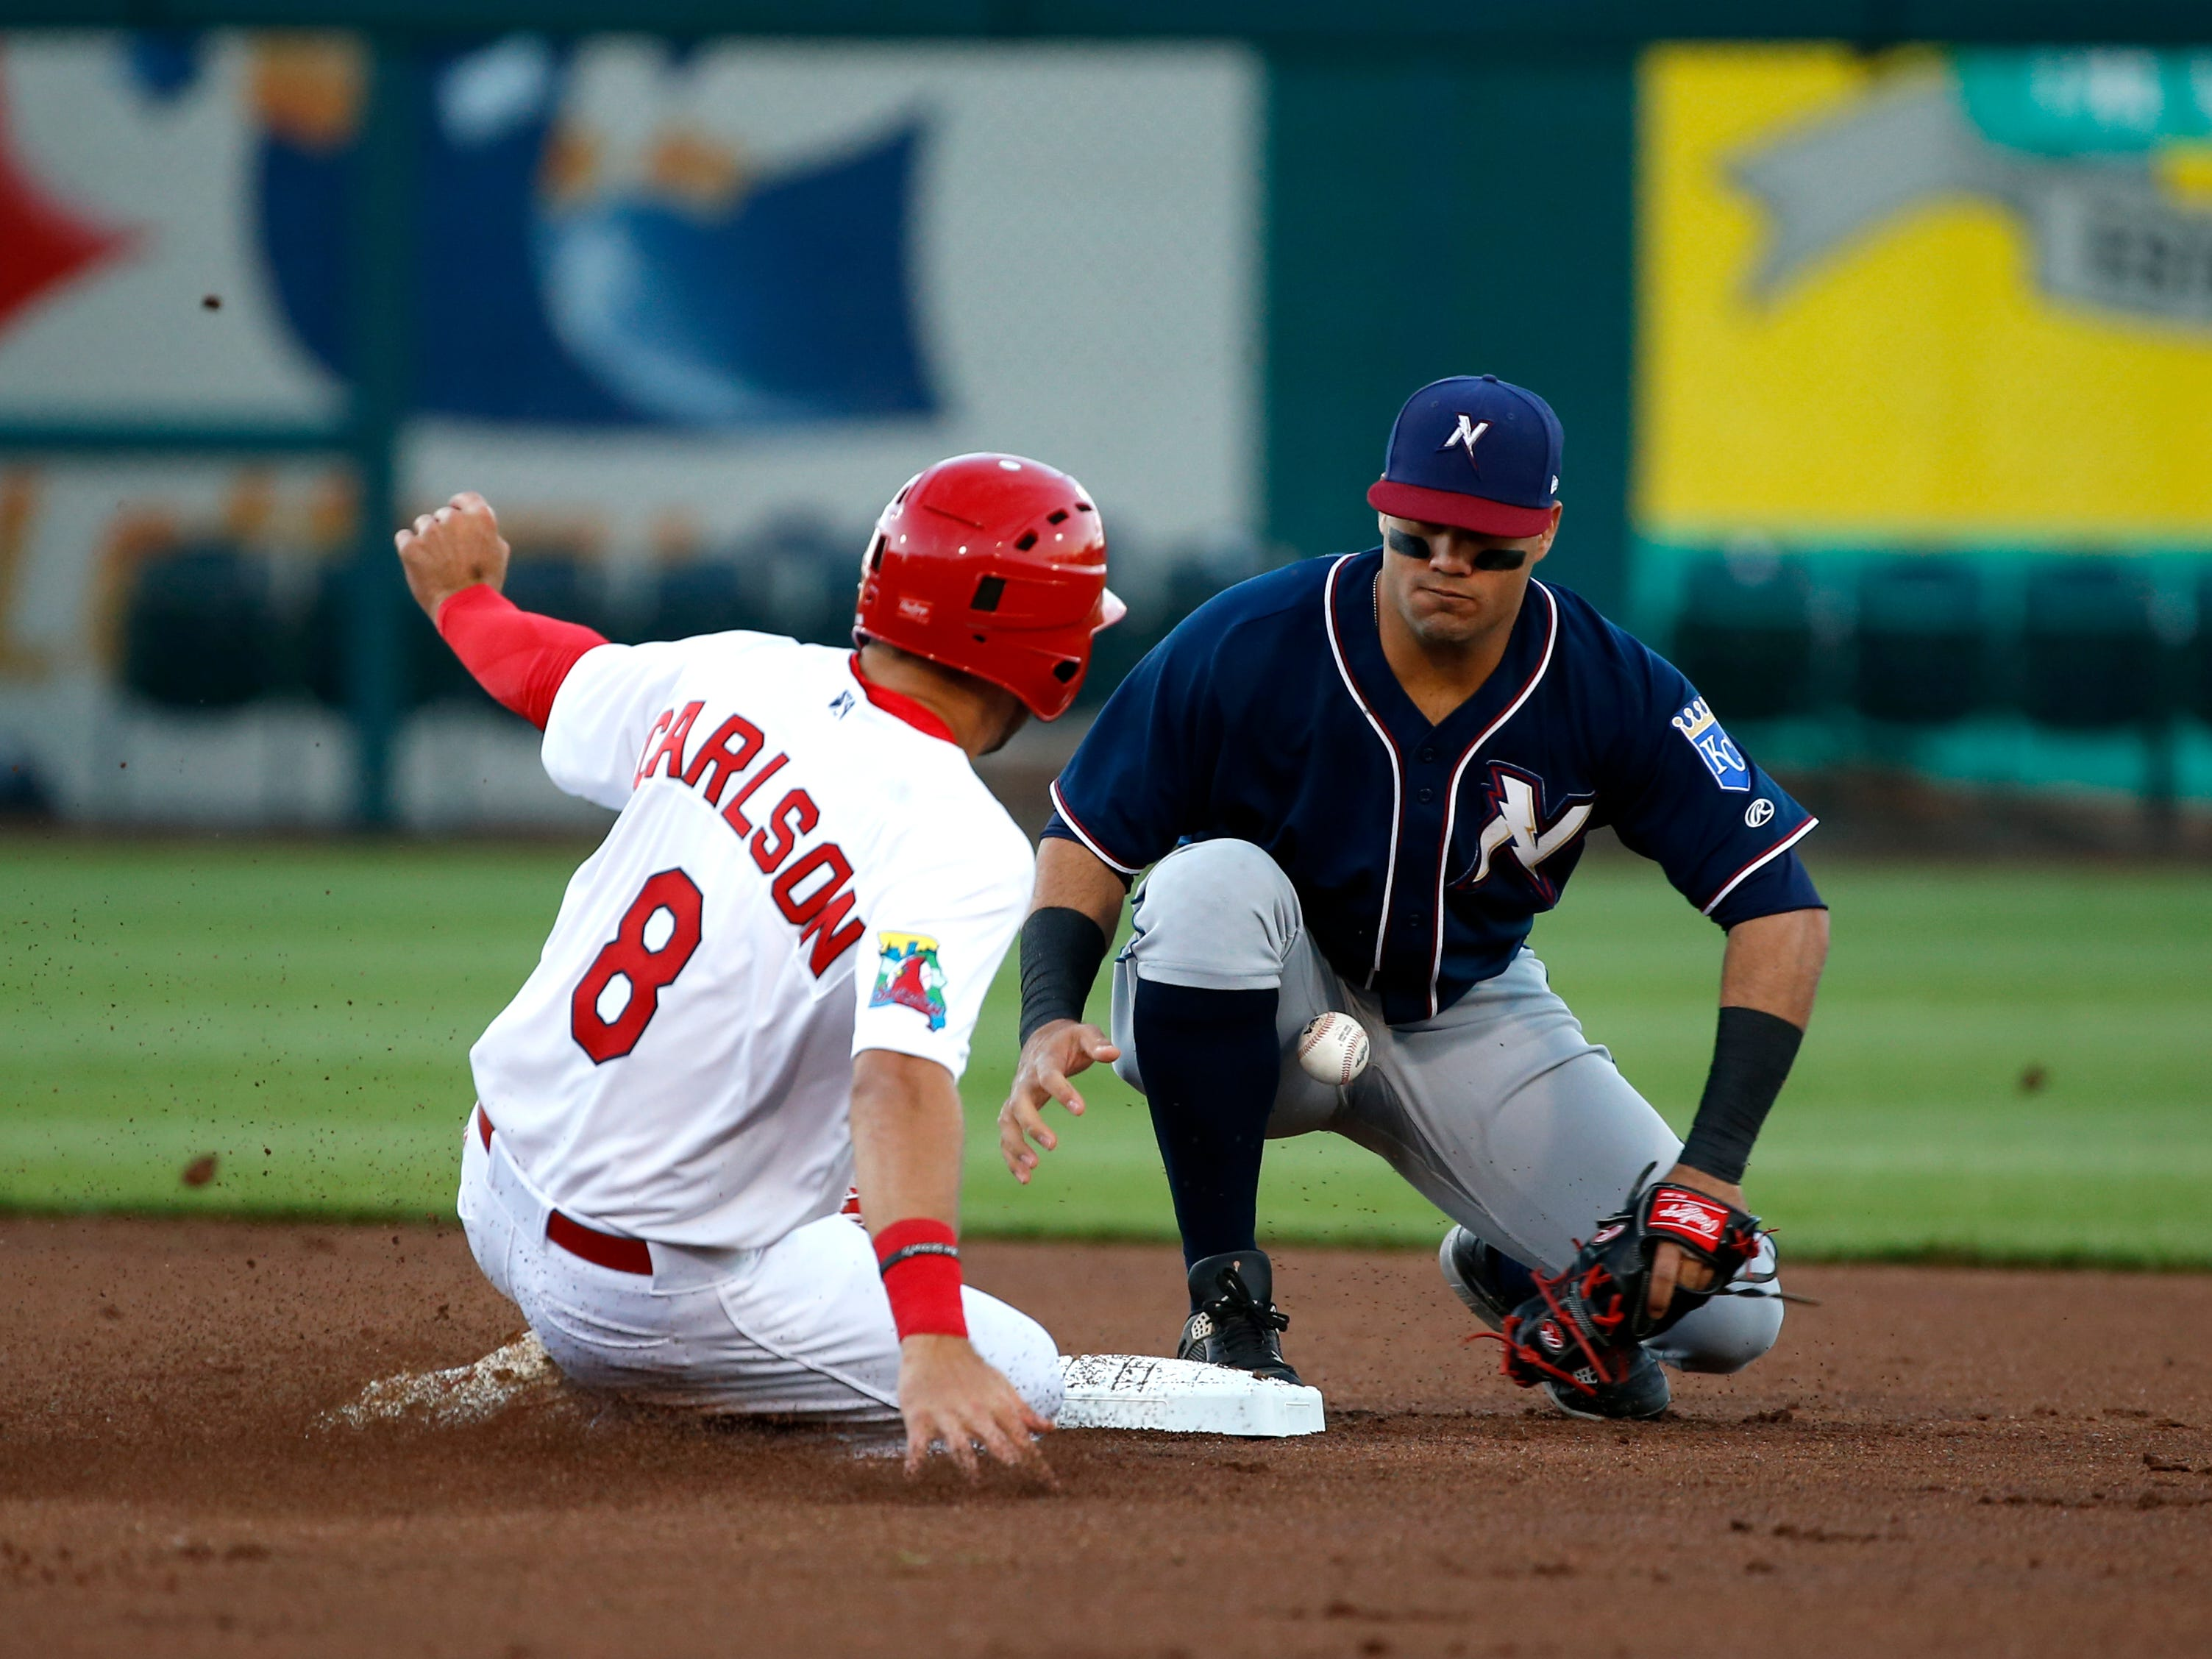 Springfield Cardinal Dylan Carlson slides safely into second as Northwest Arkansas Naturals second baseman Gabriel Cancel misses a throw at Hammons Field on Thursday, April 11, 2019 during the Cardinals home opener.